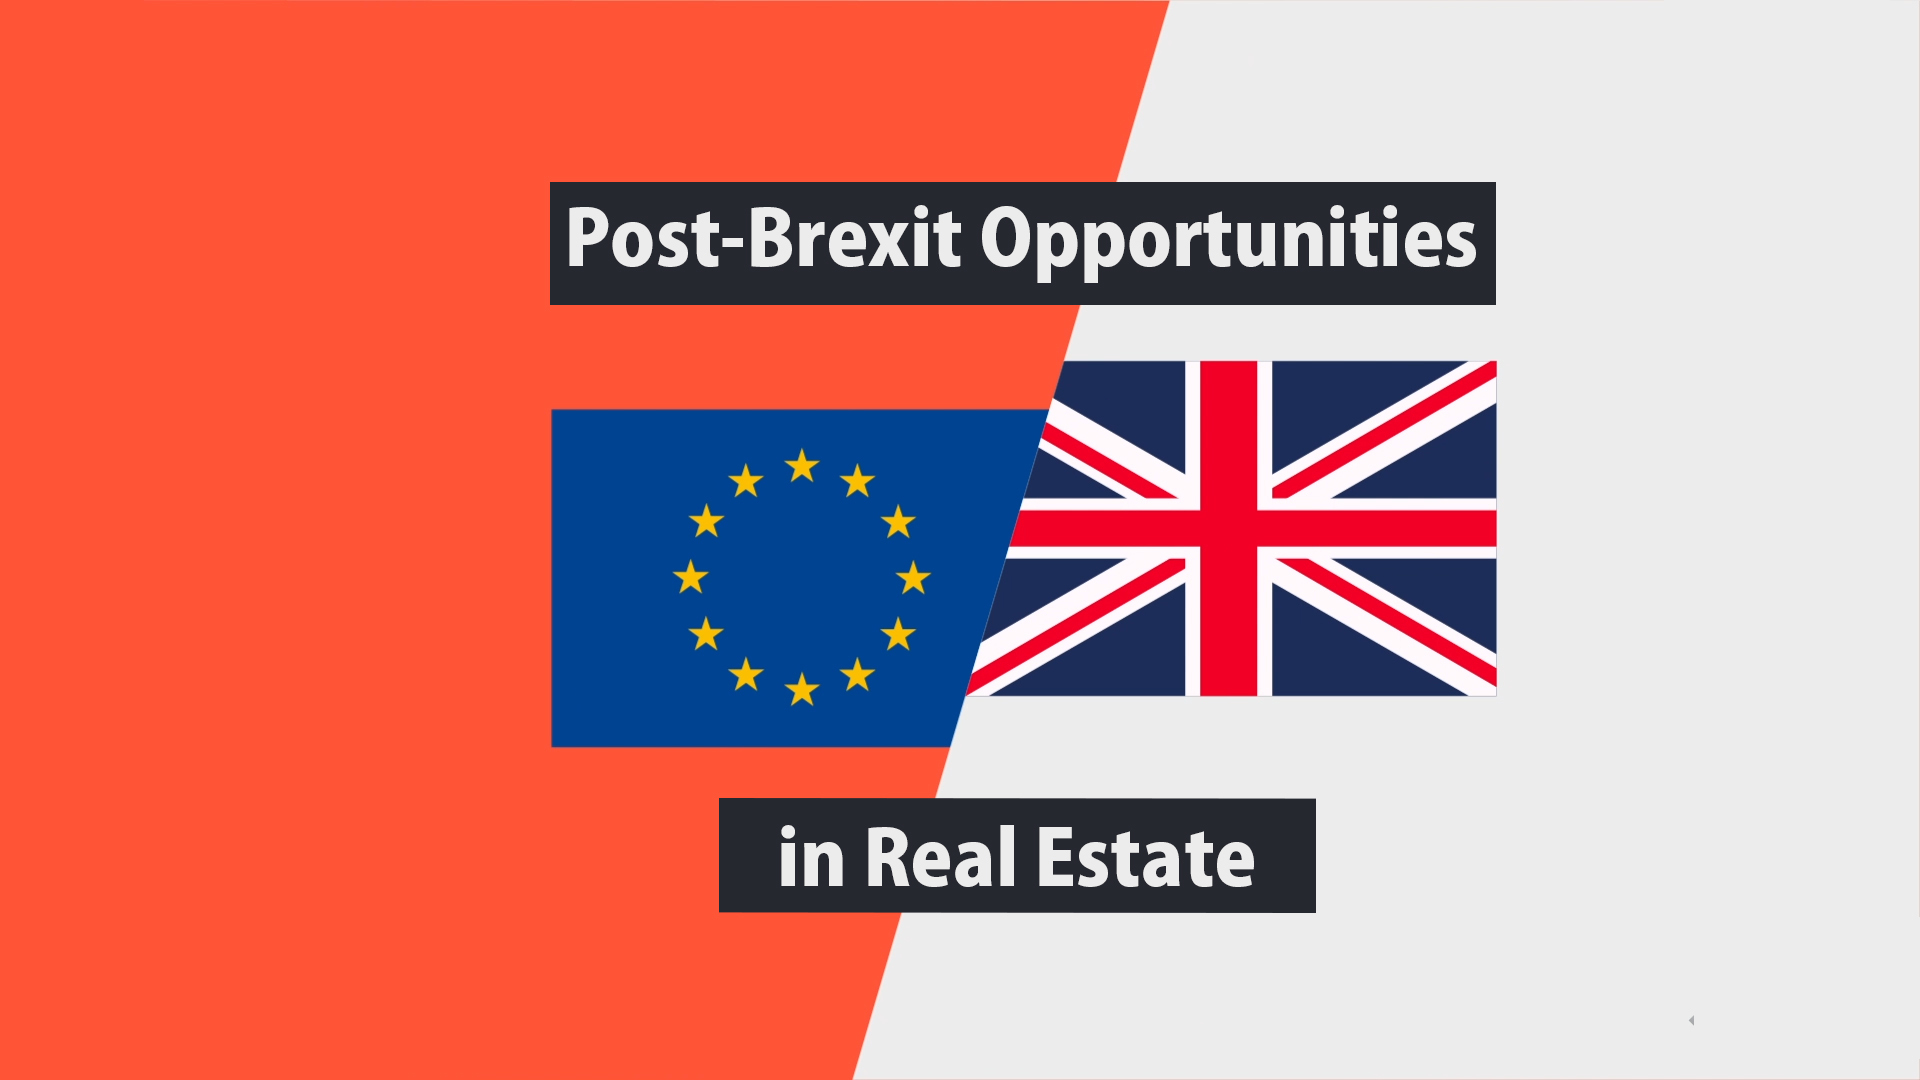 Post-Brexit Opportunities in Real Estate